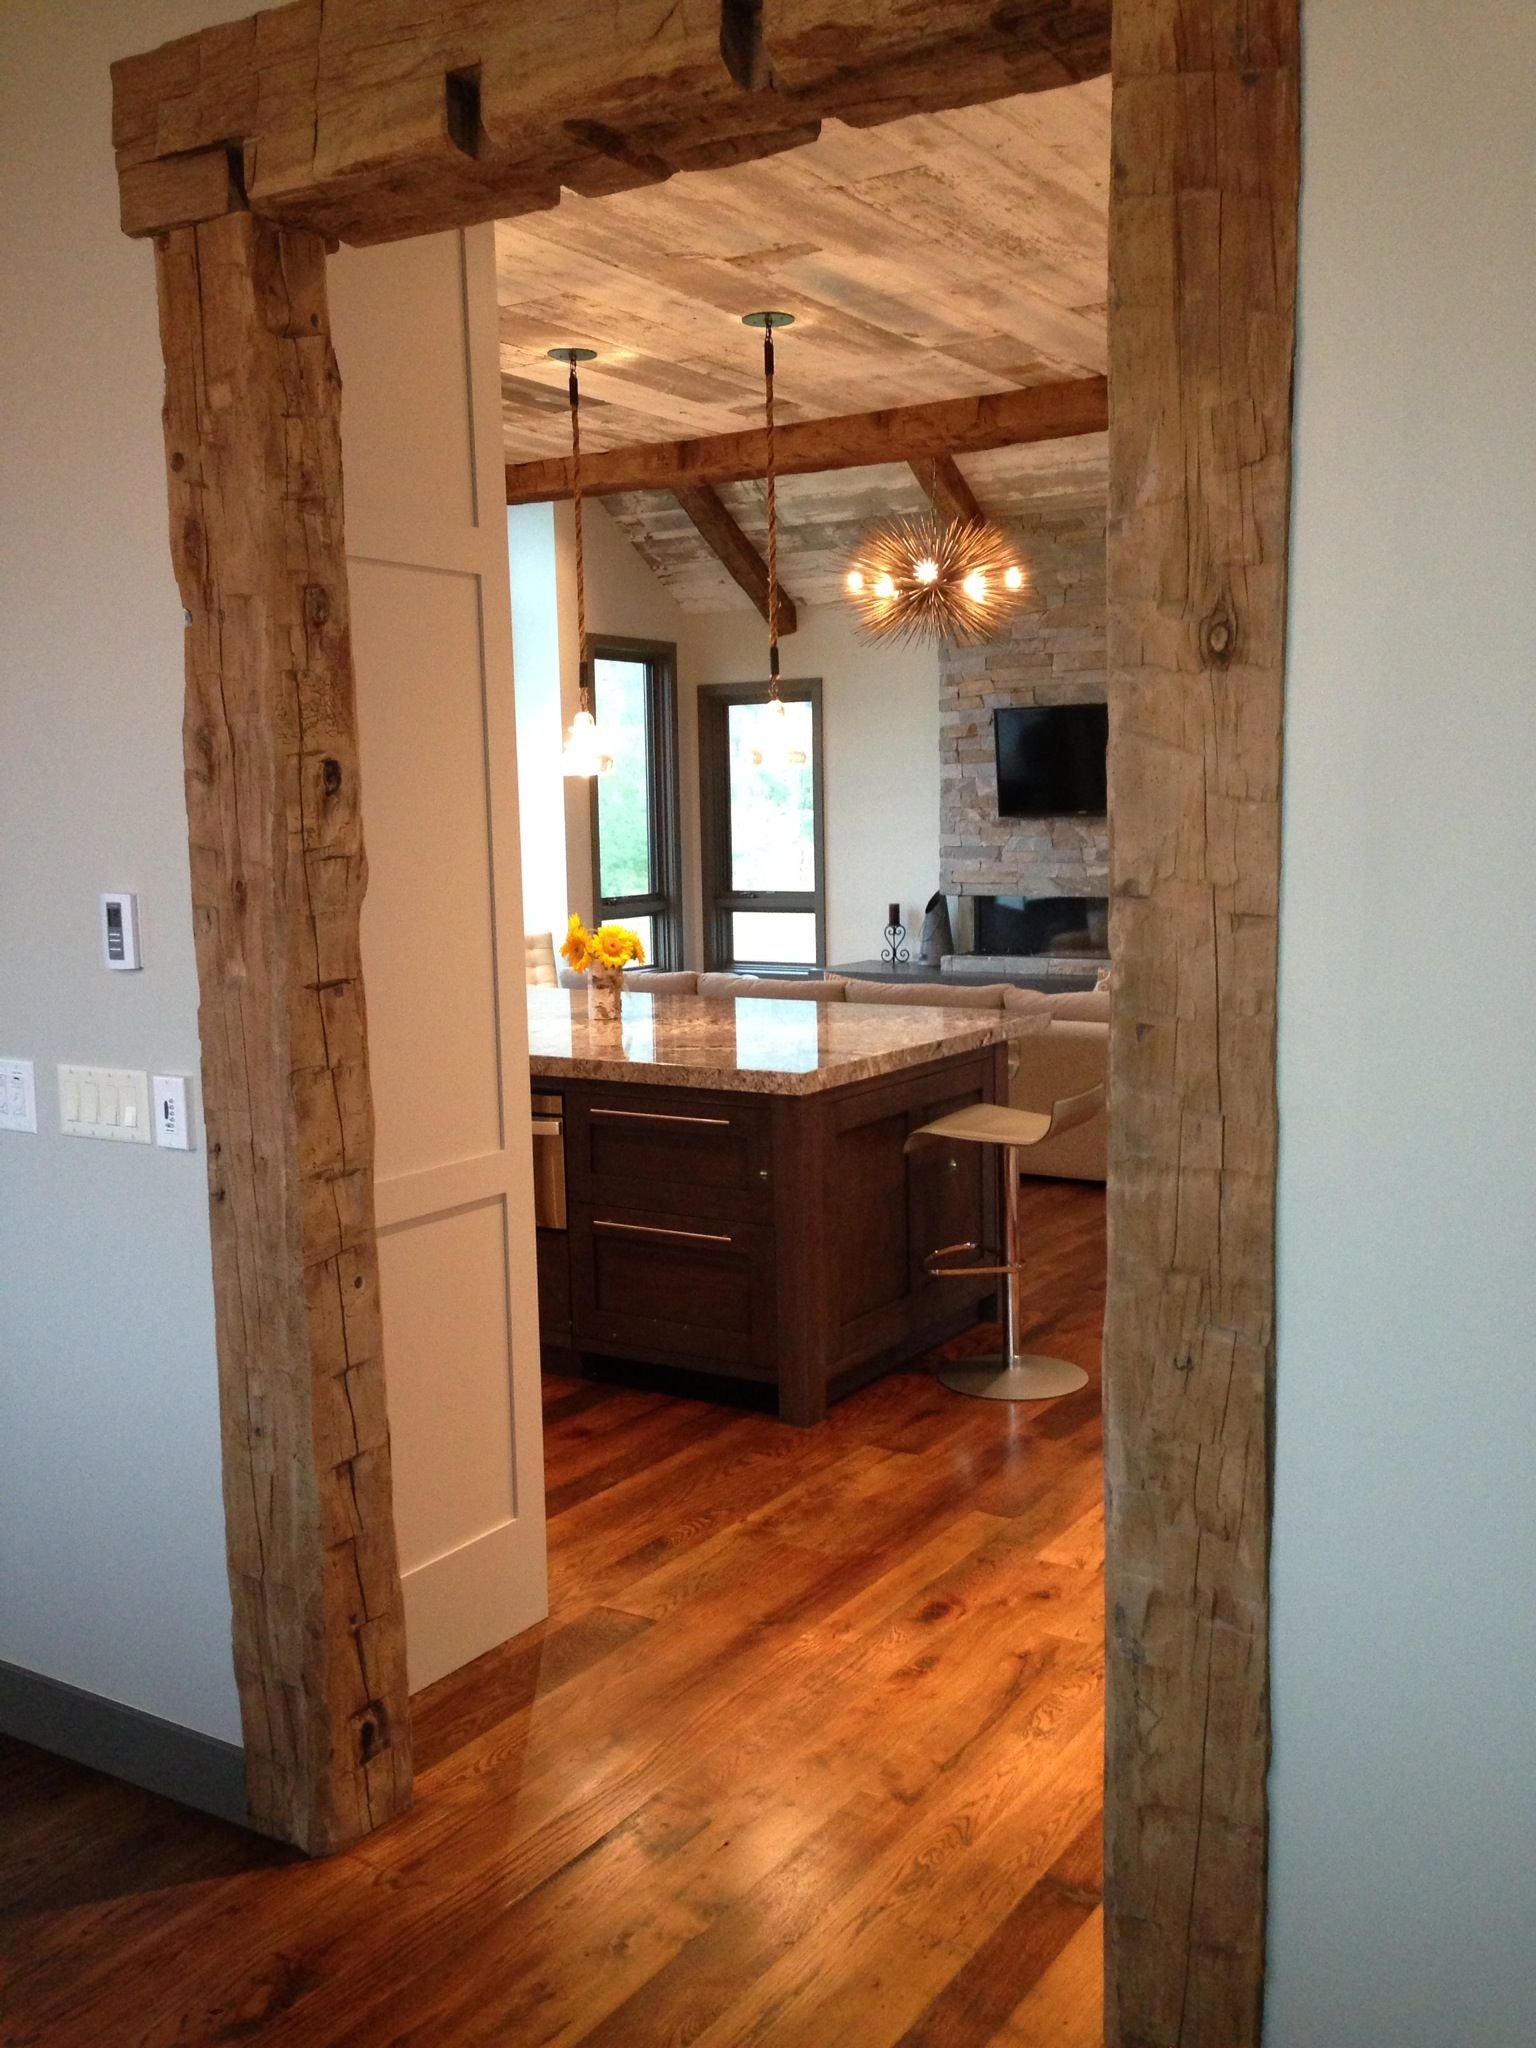 Frame Your Doorway In Hand Hewn Beams And Create An Entrance No One Will Forget